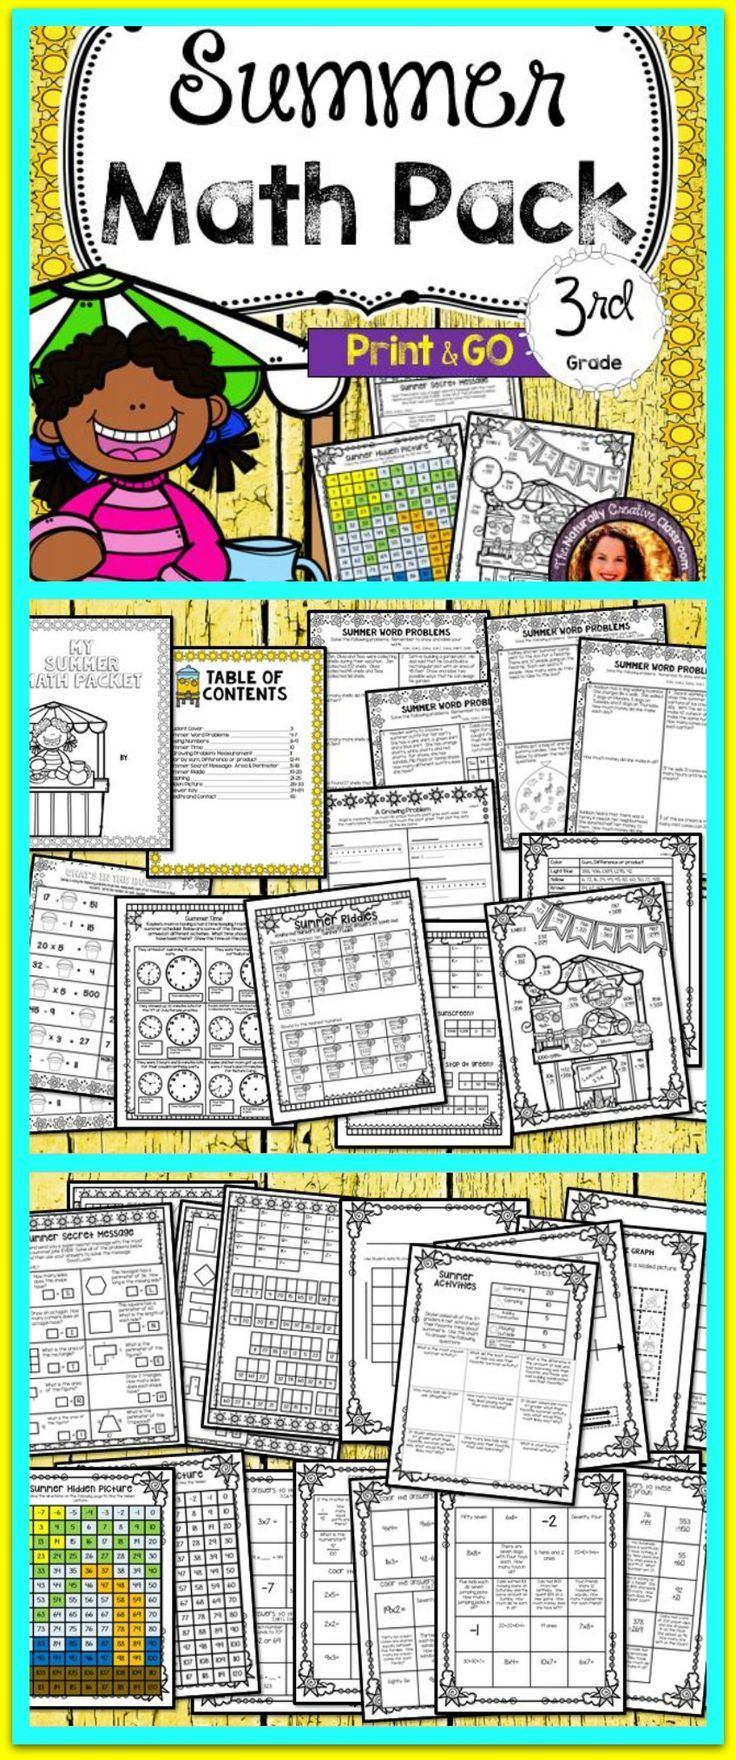 School is just around the corner!  This Summer Math Pack offers a fun and engaging way to review 3rd grade math standards, or to see what is ahead!  This packet covers 3 digit addition and subtraction, multiplication, division, time, rounding and so much more!